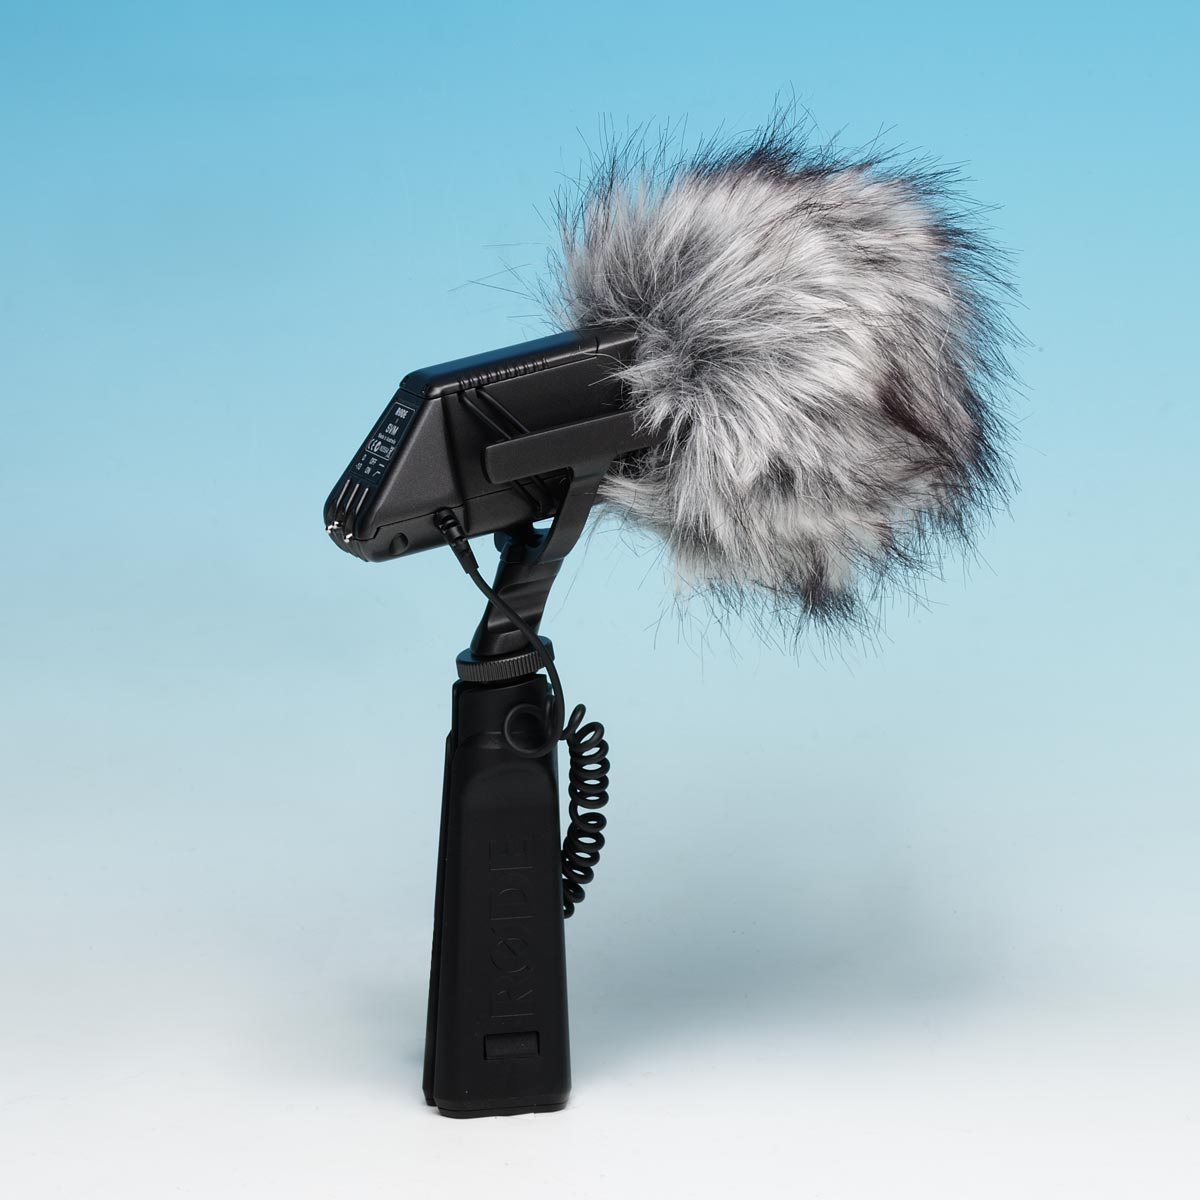 RØDE PG-1 på StereoVideoMic